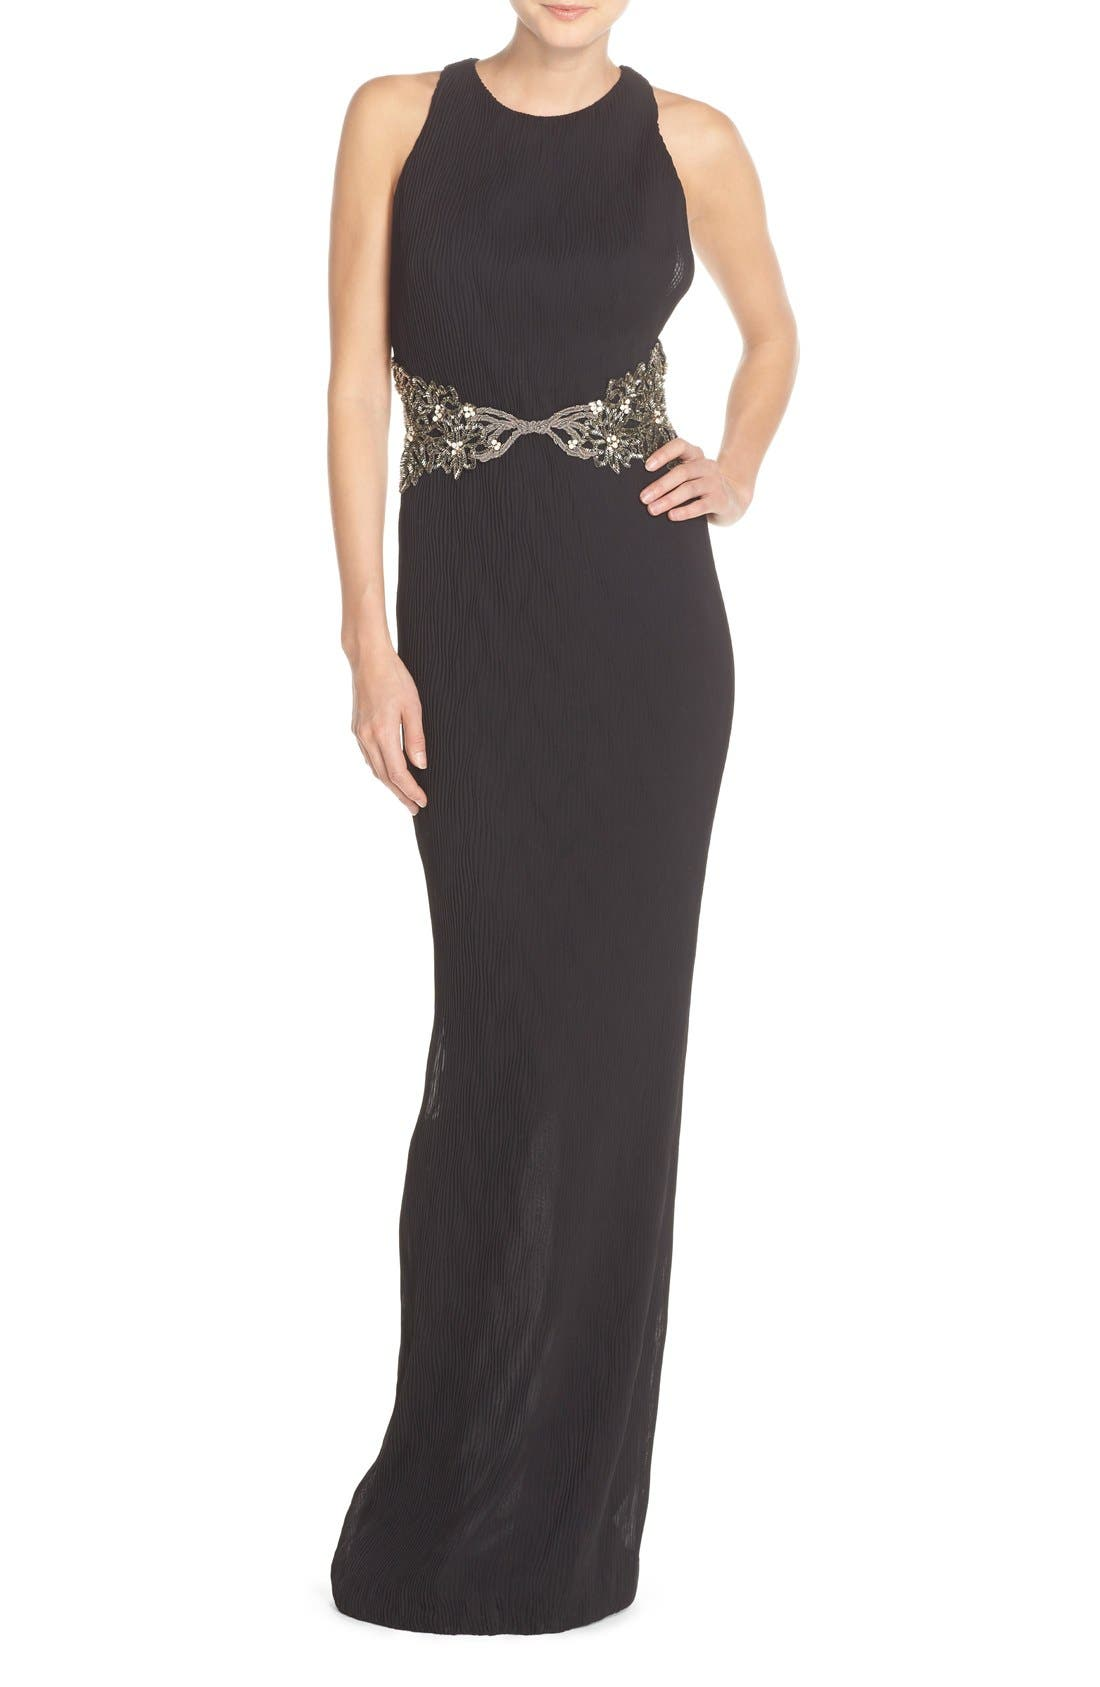 Alternate Image 1 Selected - Badgley Mischka Embellished Pleat Racerback Gown